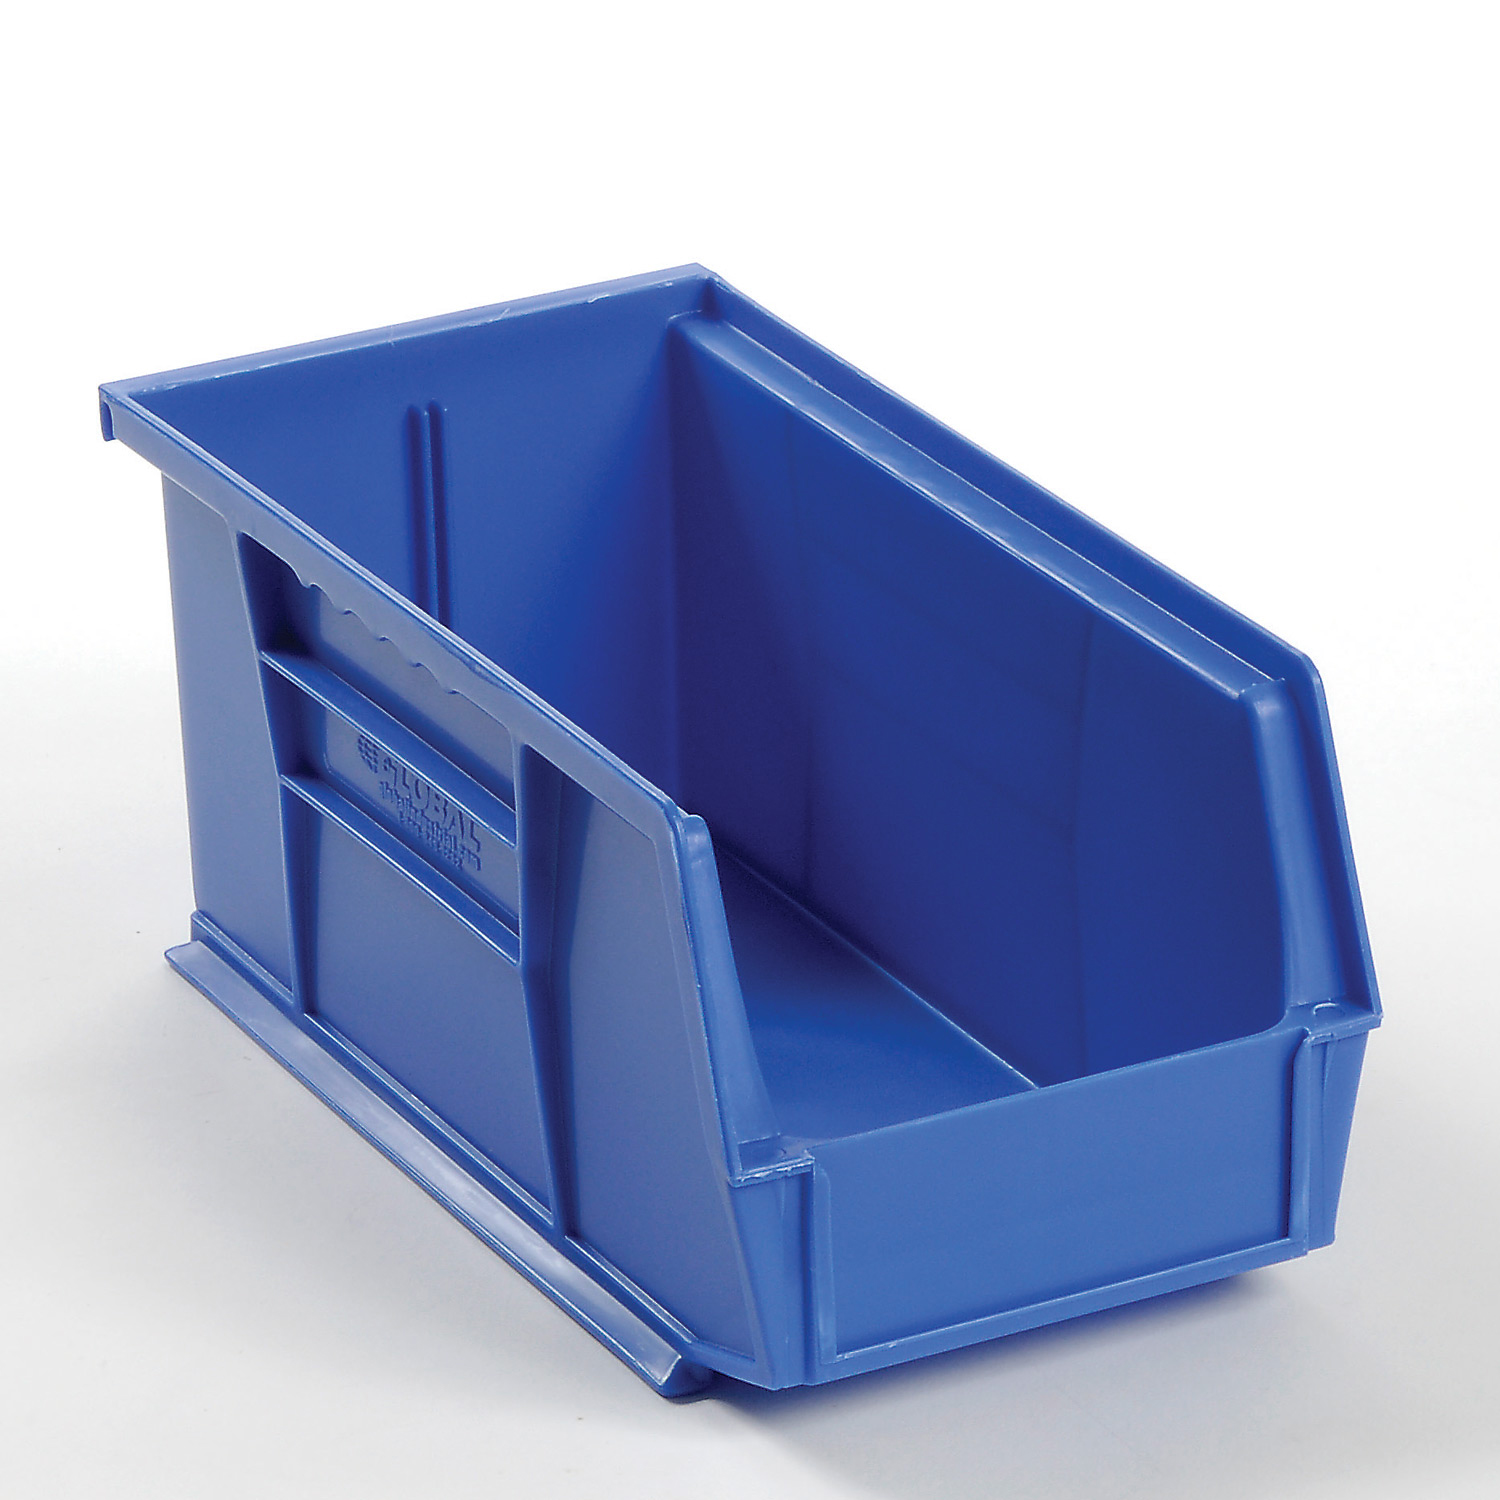 Plastic Stacking And Hanging Parts Bin 5-1/2 x 10-7/8 x 5, Blue, Lot of 12